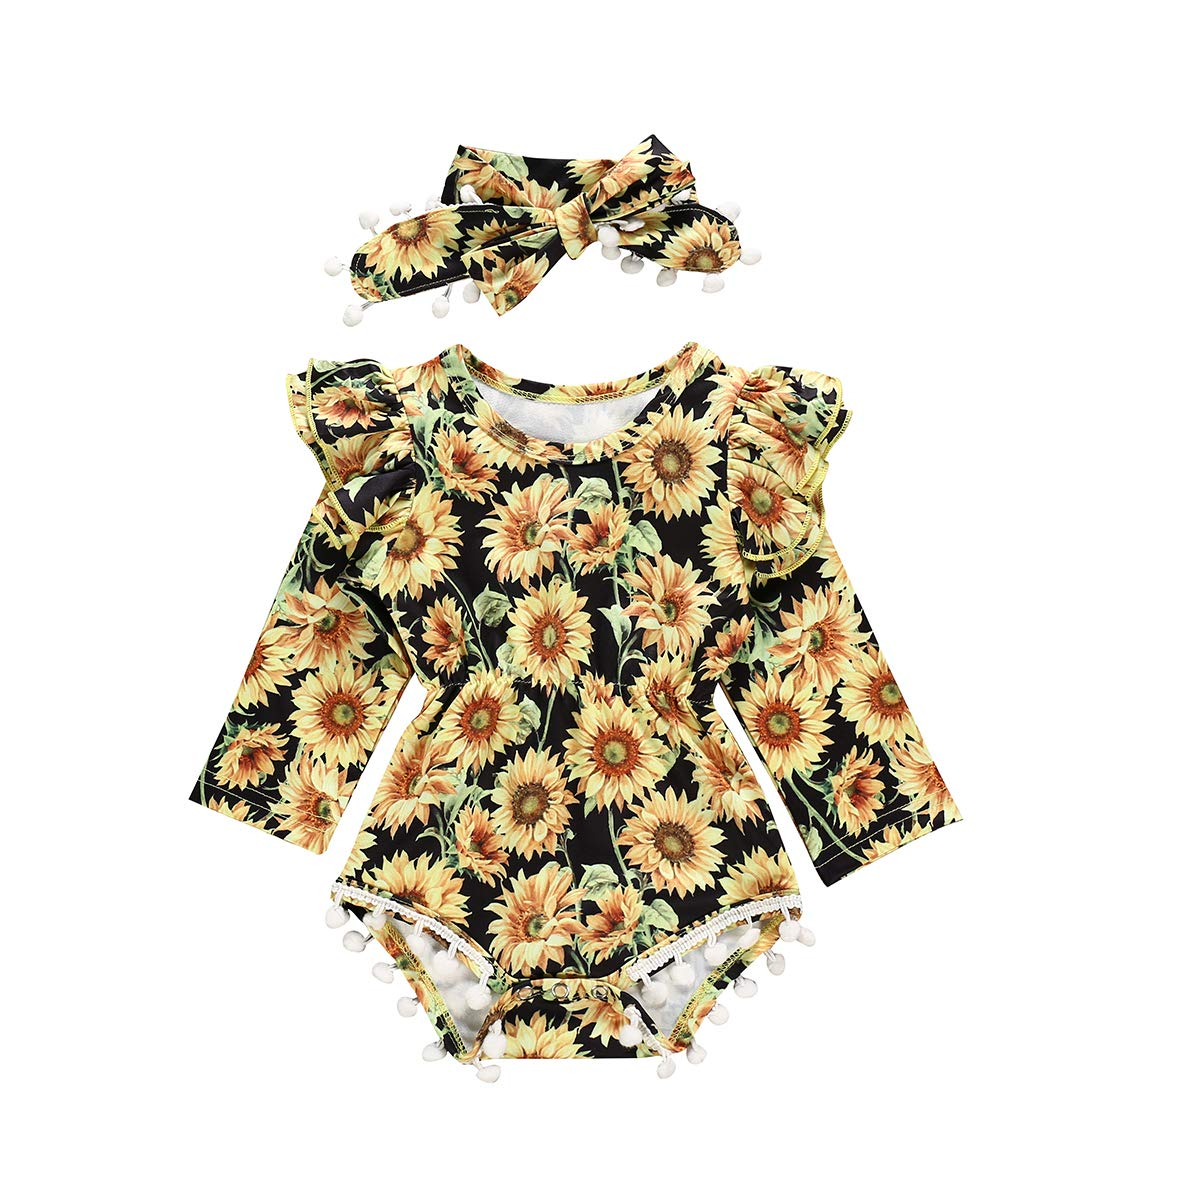 Newborn Infant Baby Girl Sunflower Outfit Floral Ruffle Romper Jumpsuit Bodysuit with Headband Clothes Set